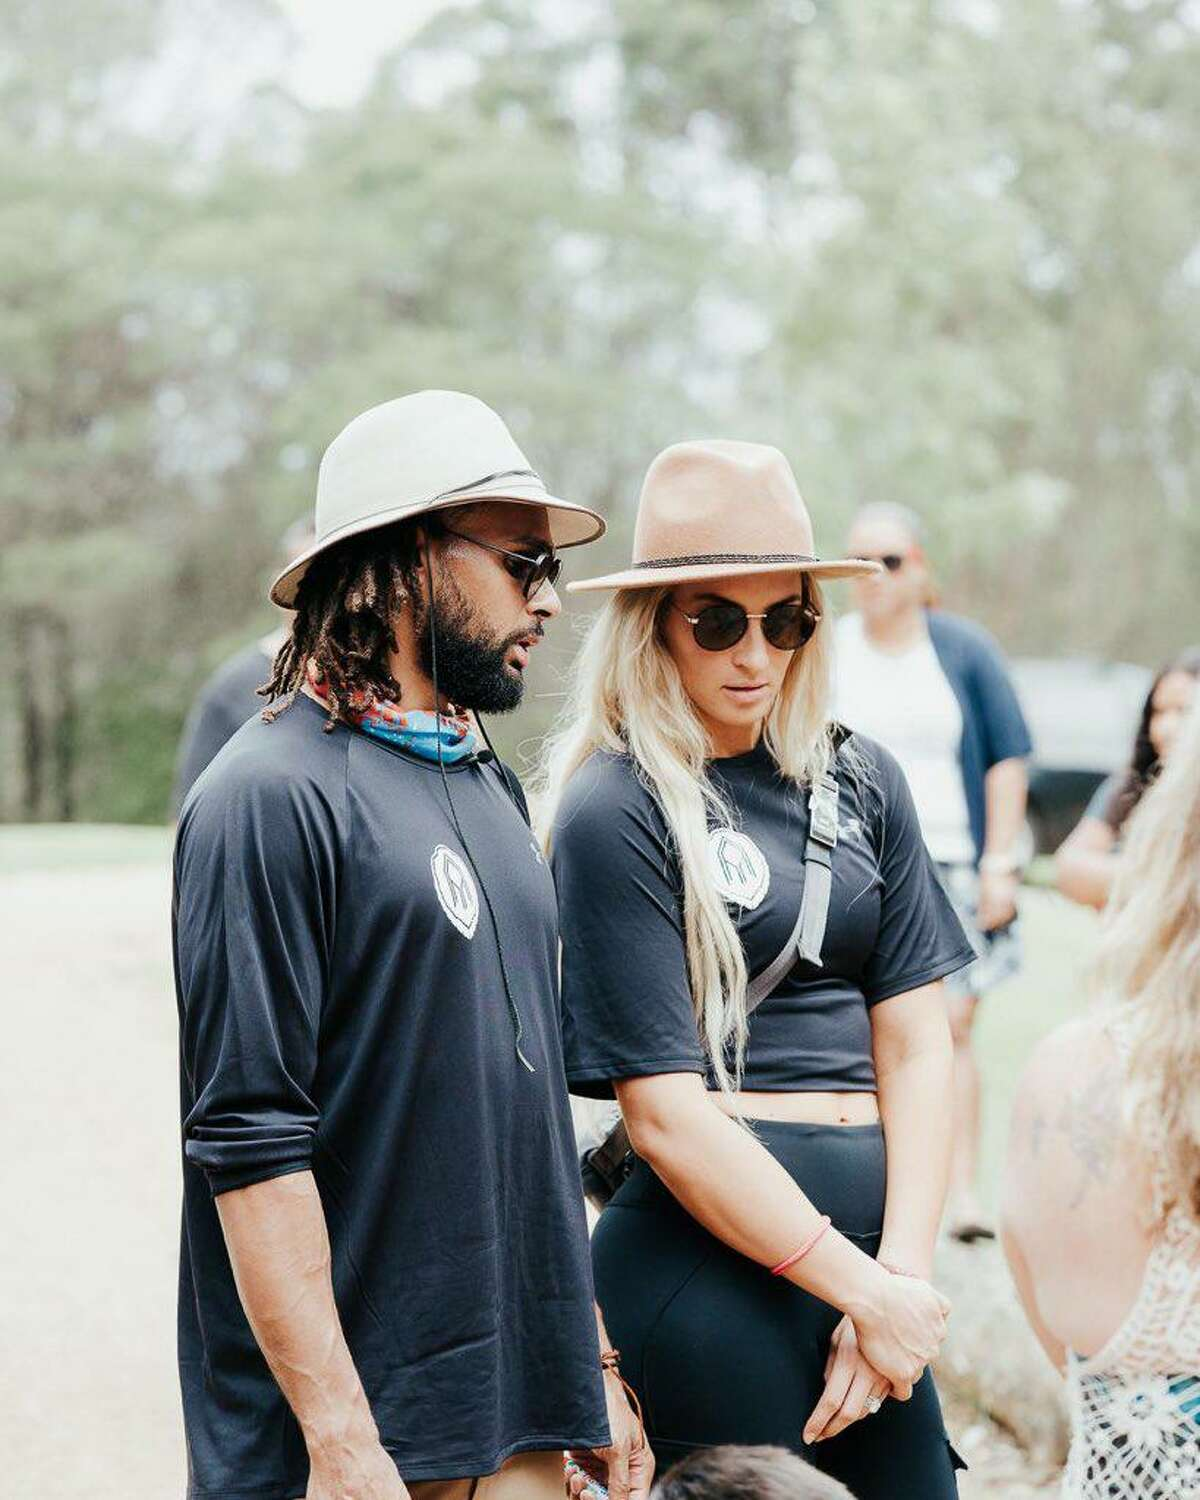 While many NBA players spent their vacation relaxing on sun-splashed beaches in Mexico or the Caribbean, Mills and his wife, Alyssa, made the nearly 9,500-mile trip to wildfire-ravaged Australia on a mission of mercy to help ease the suffering of humans and wildlife.